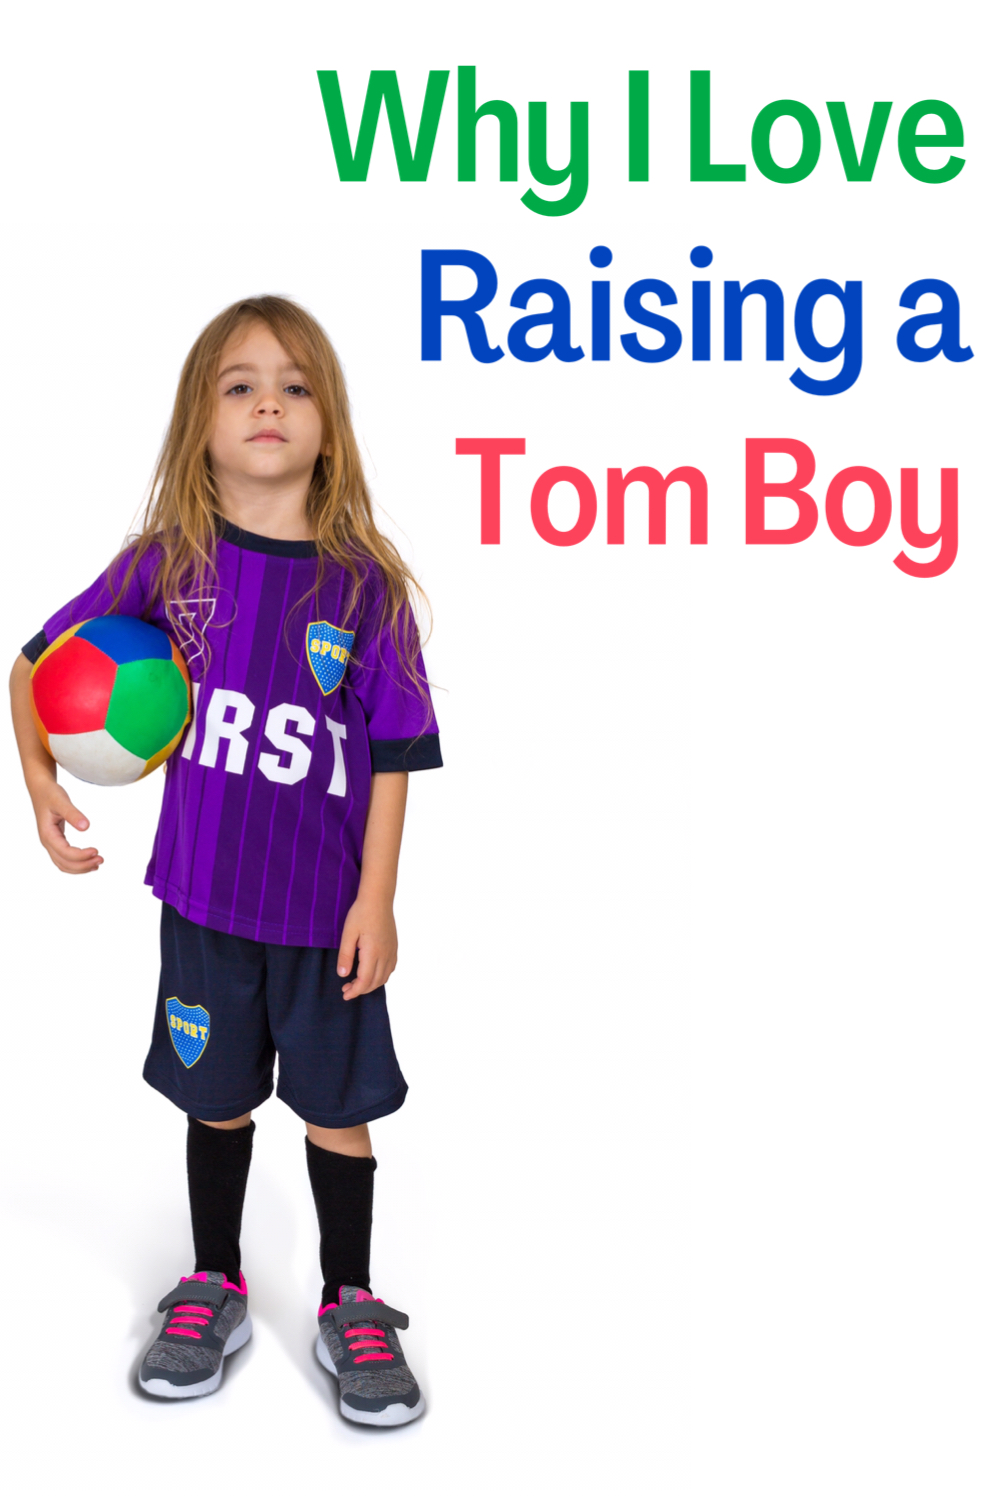 Raising a Tom boy - Picture of a girl in football kit